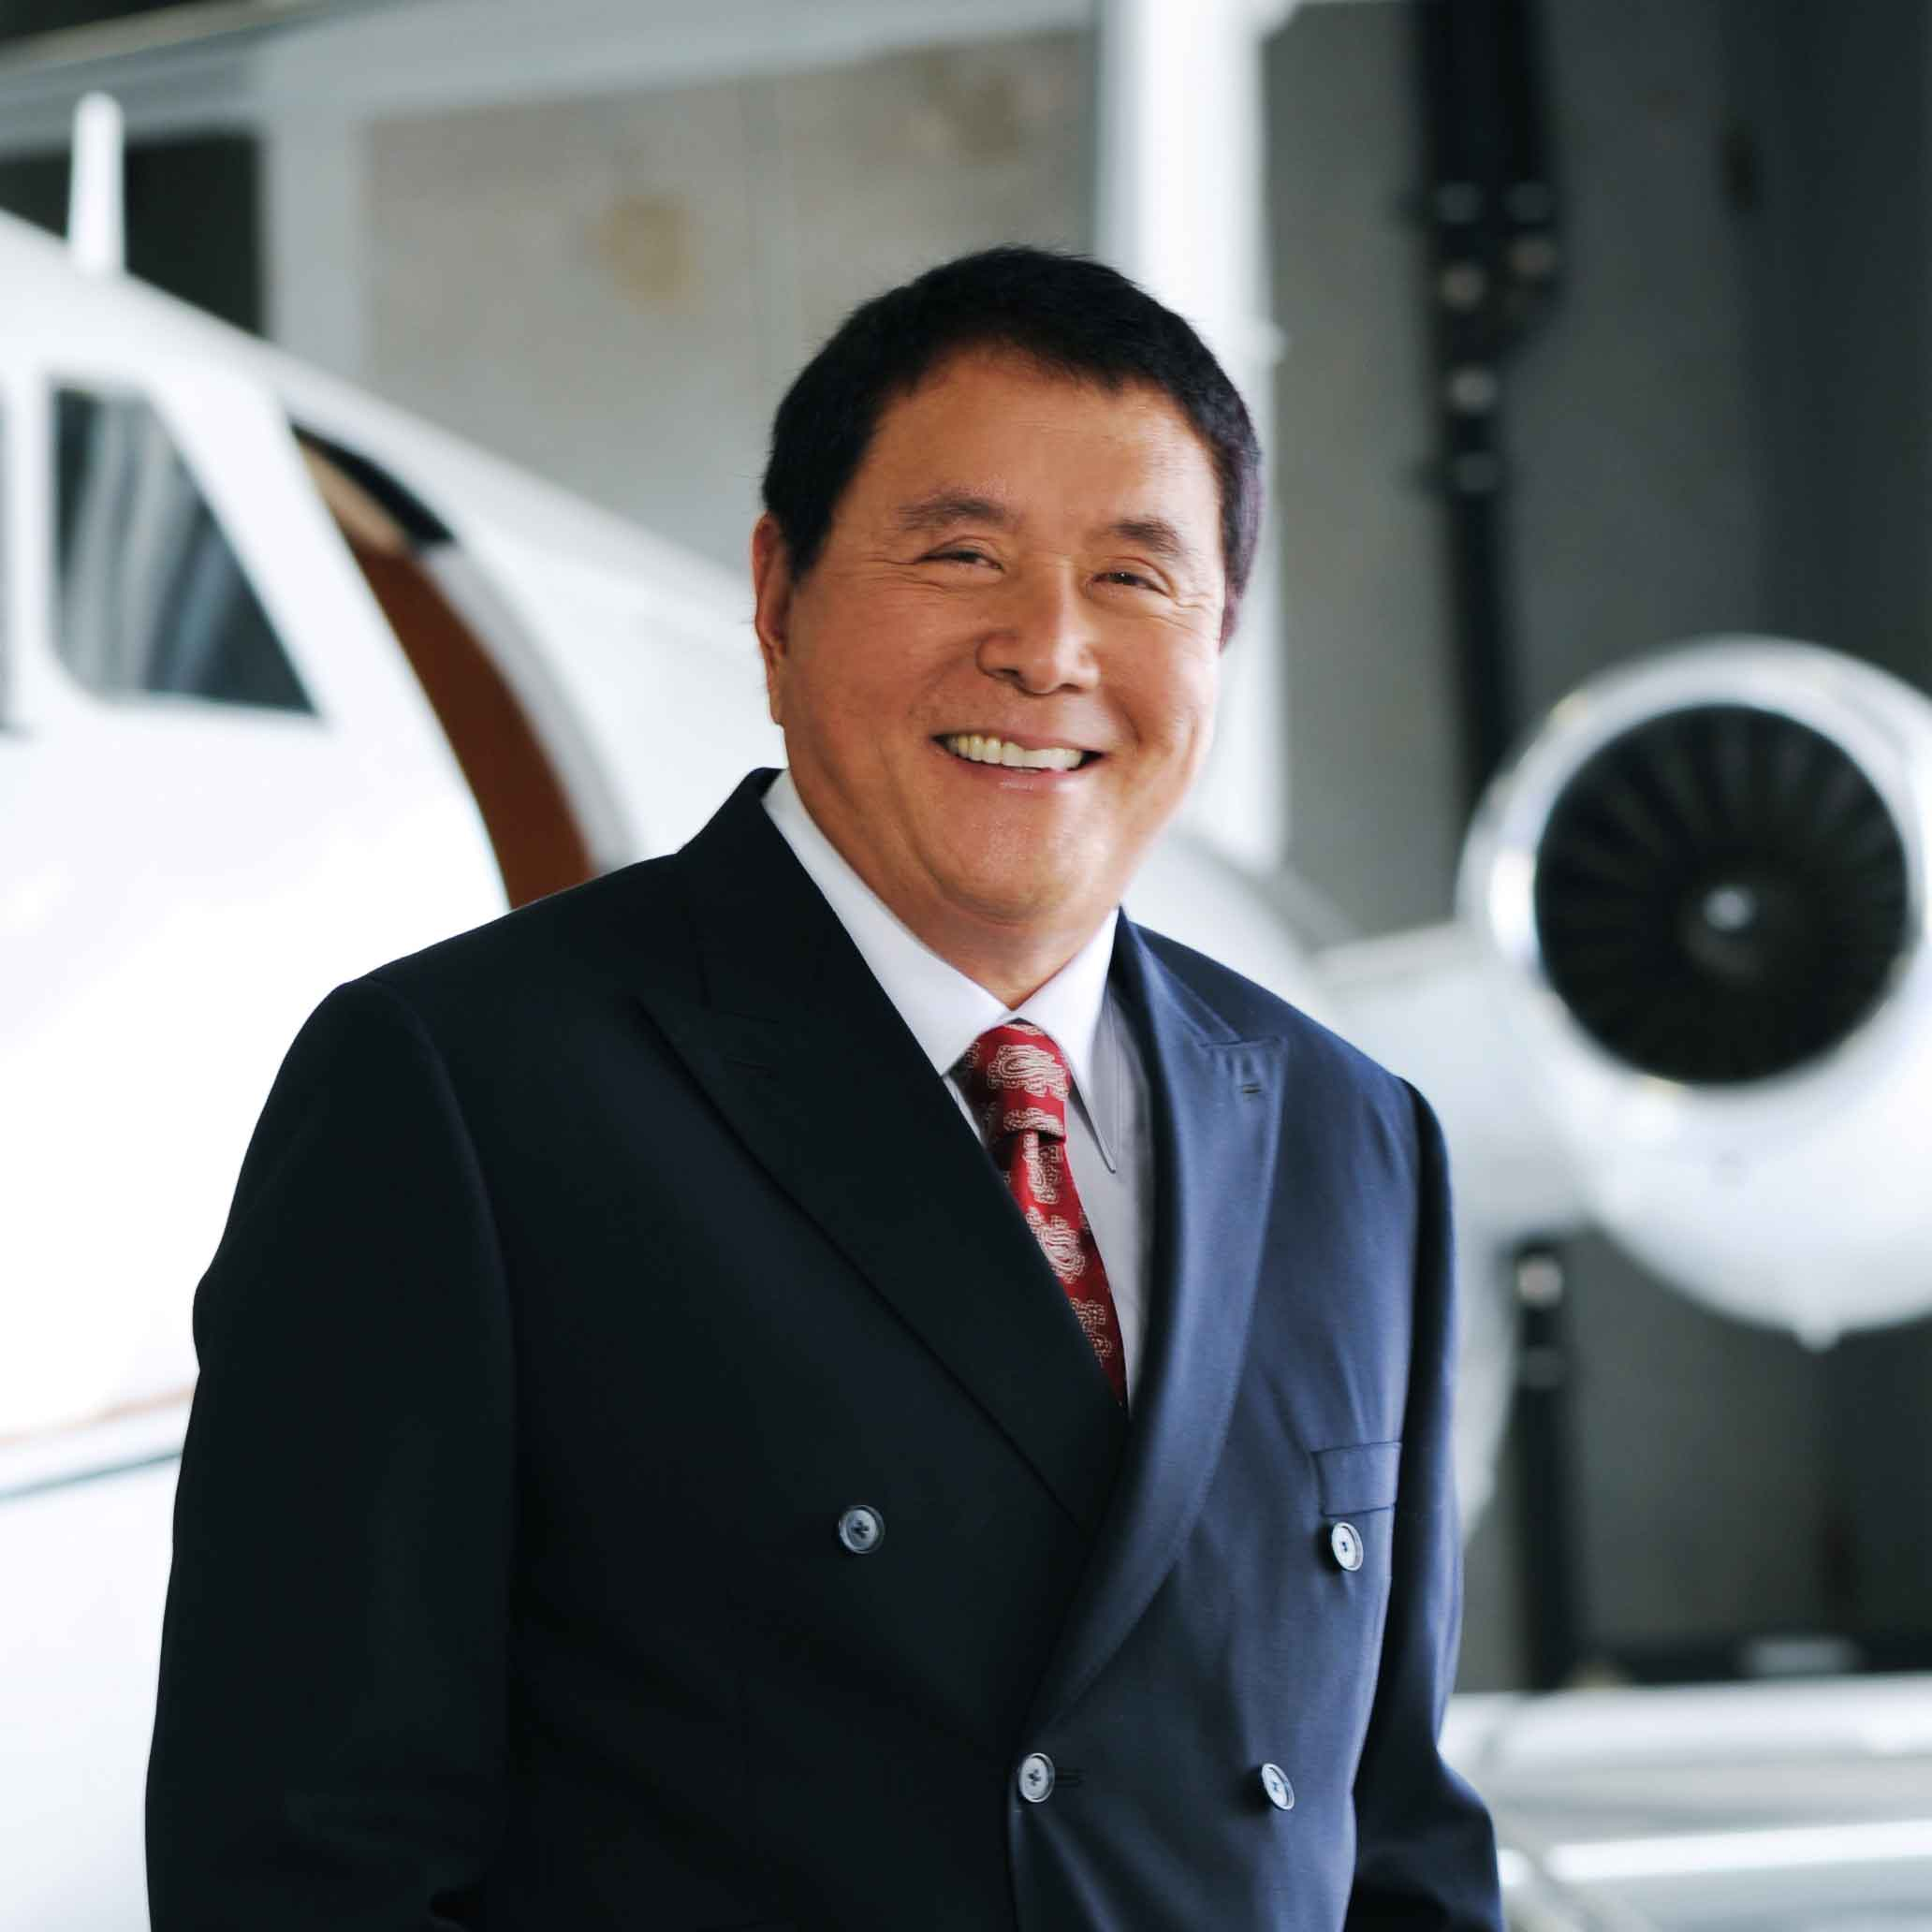 Robert Kiyosaki standing by a private jet in an airplane hanger.